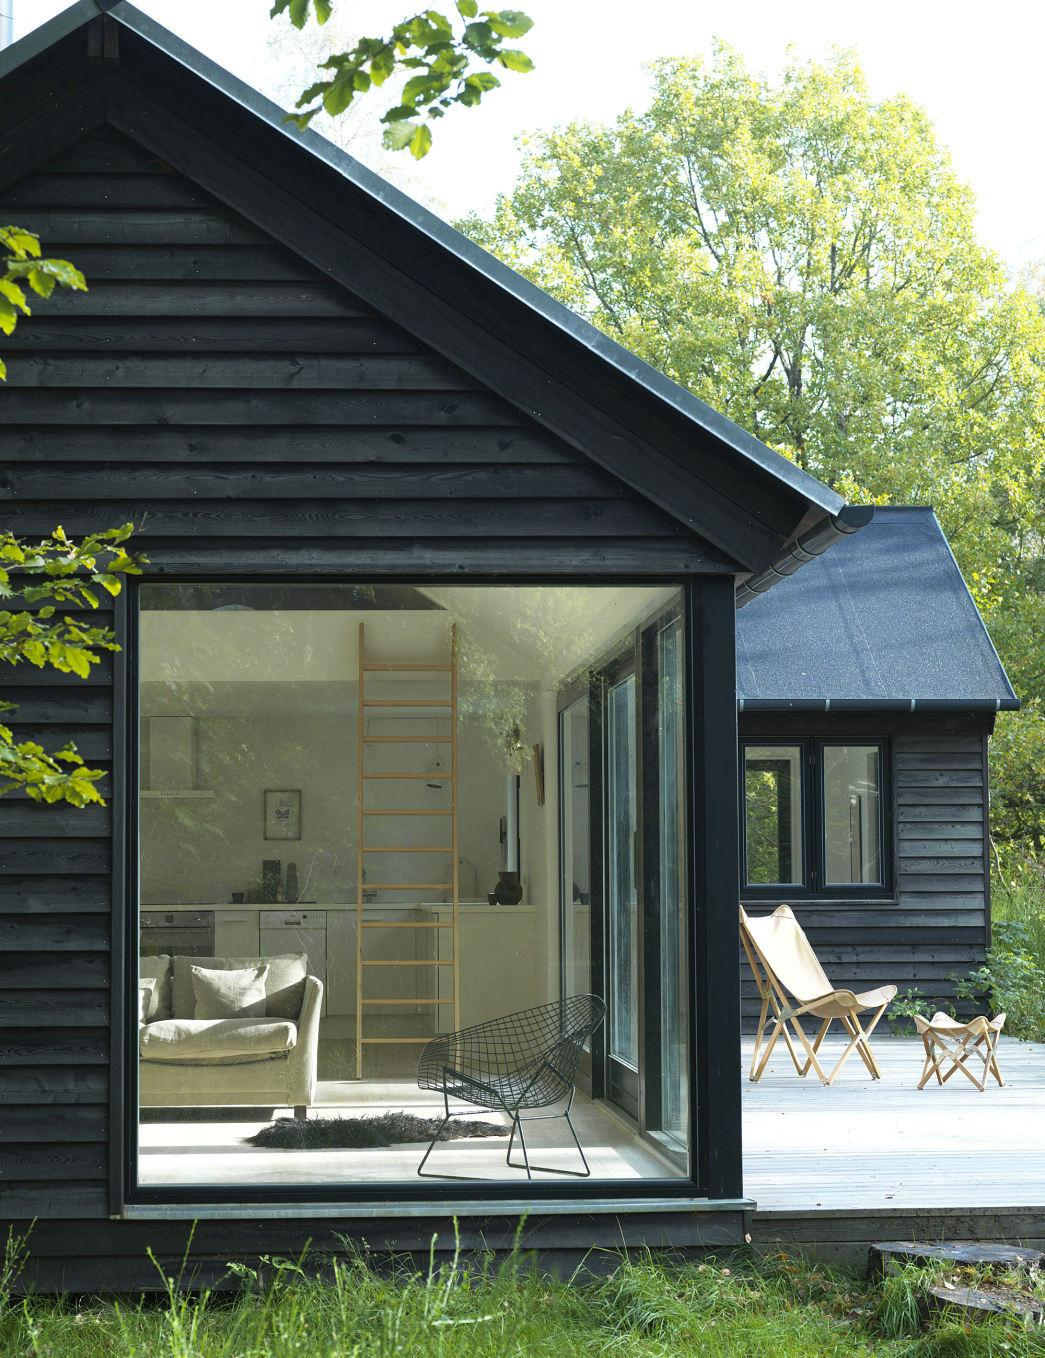 Gallery vacation cottage in denmark m n huset small for Vacation cottage